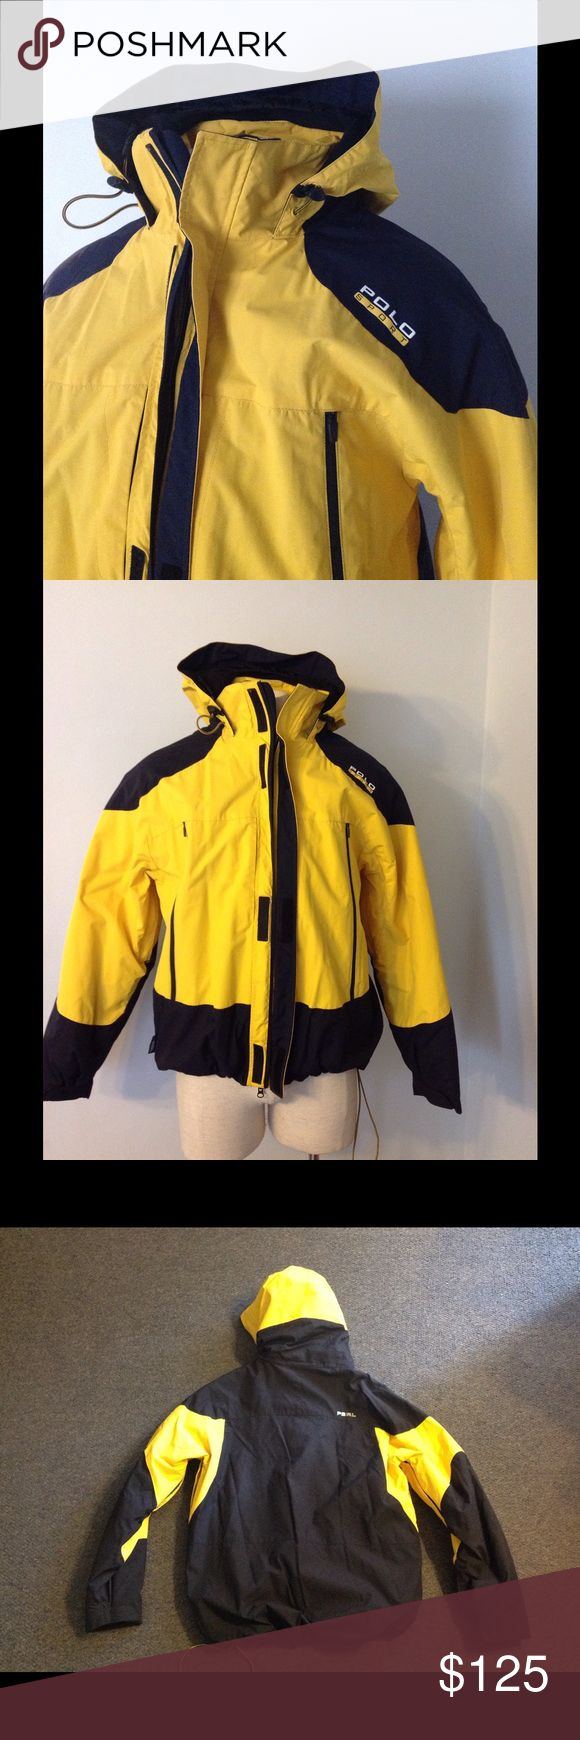 "Ralph Lauren Polo Sport Hooded Coat L XL ❤️SALE❤️ Very nice RL Polo Sport Jacket/Coat.  Zip up with Velcro over top. Lined in fleece. Marked an XL but may run a bit smaller. Great condition. Chest 50"" Length 28"" in the front from the shoulder and a little longer in the back. Polo by Ralph Lauren Jackets & Coats"